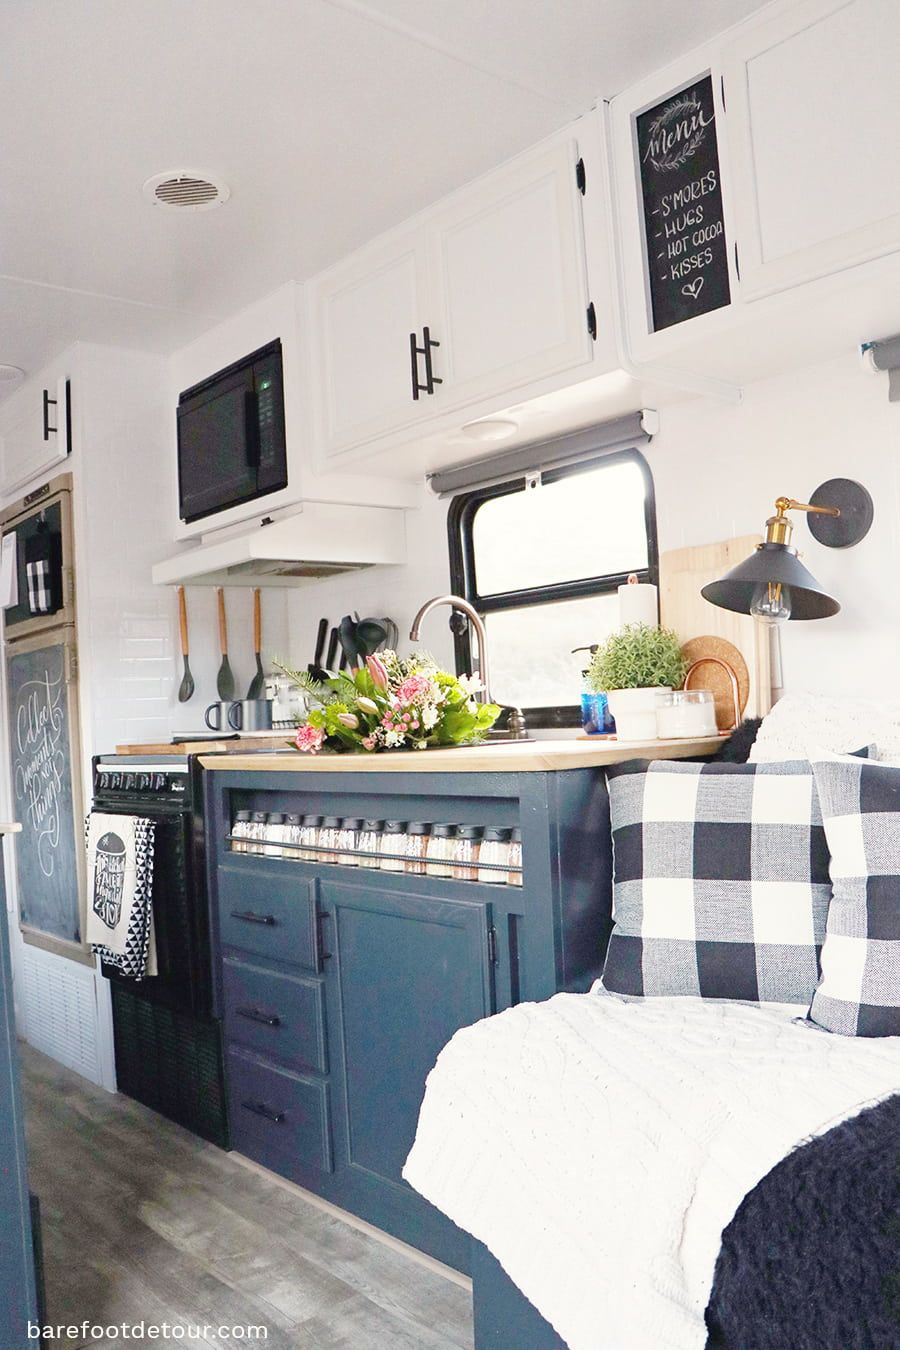 Check Out 15 Of The Most Beautifully Renovated Rvs Remodeled Using Diy Techniques With Amazing Results See Glamper Camper Diy Camper Remodel Camper Makeover